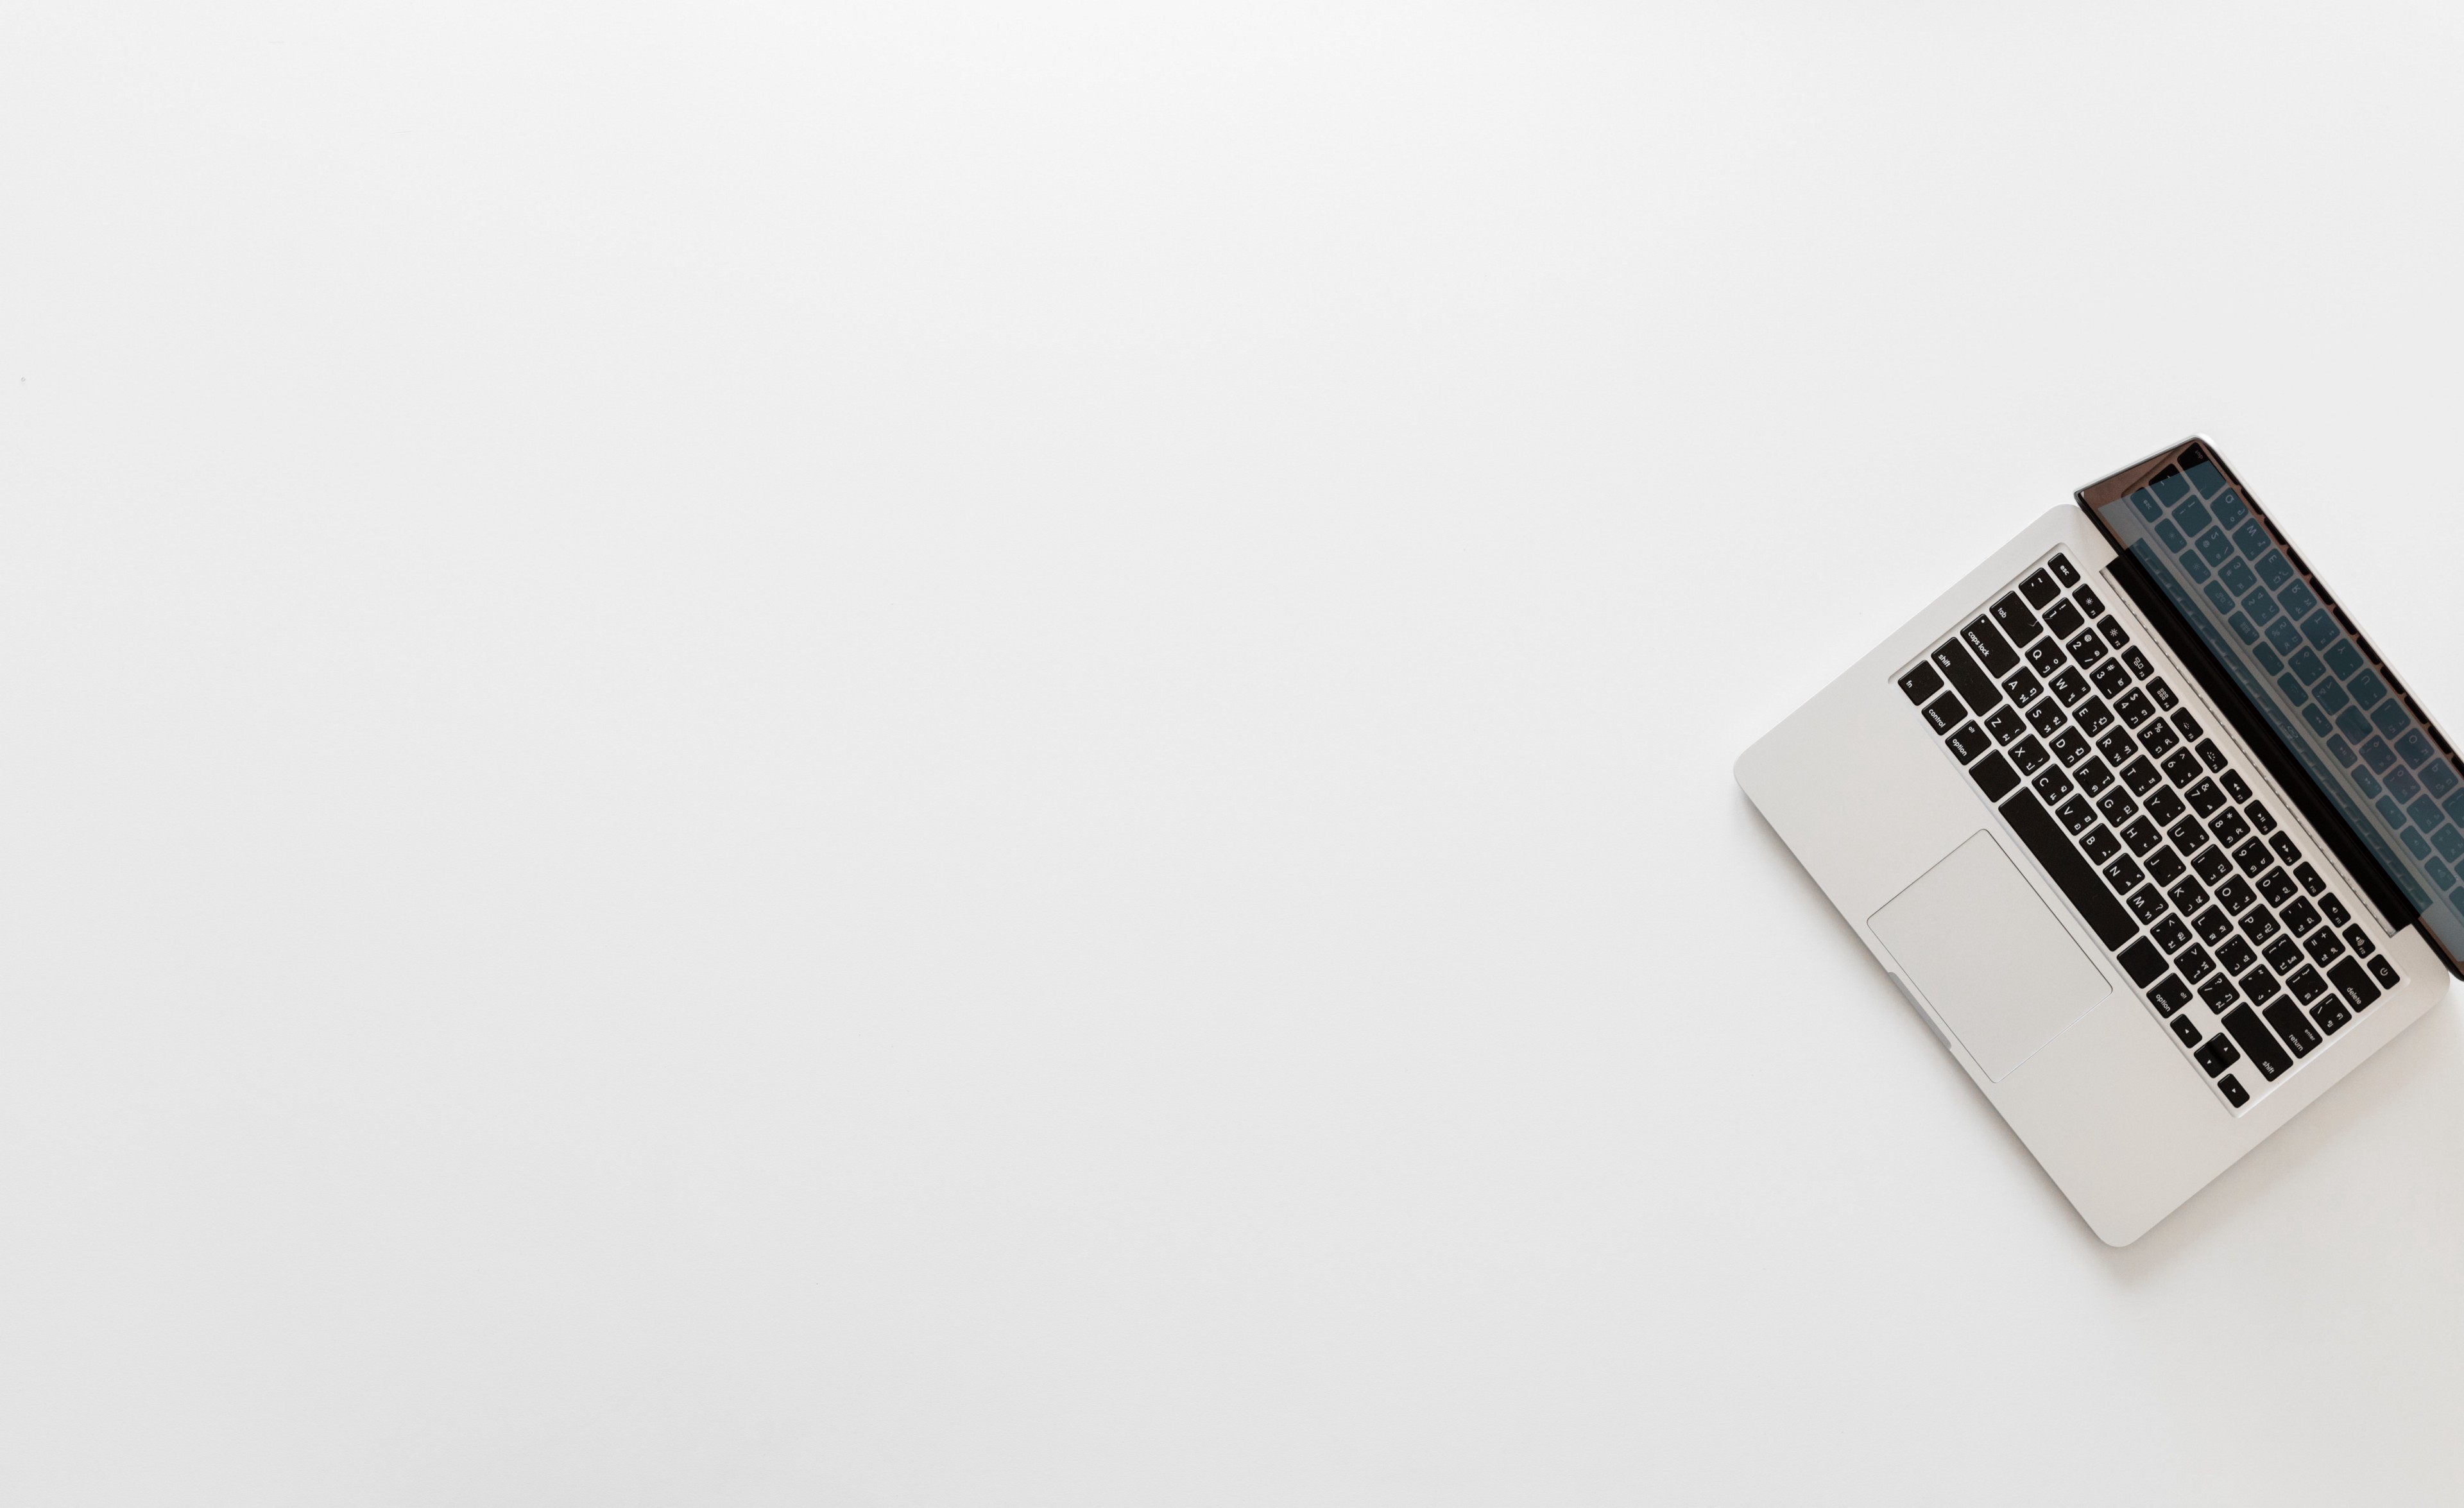 Digital Minimalism: How to Simplify Your Online Life